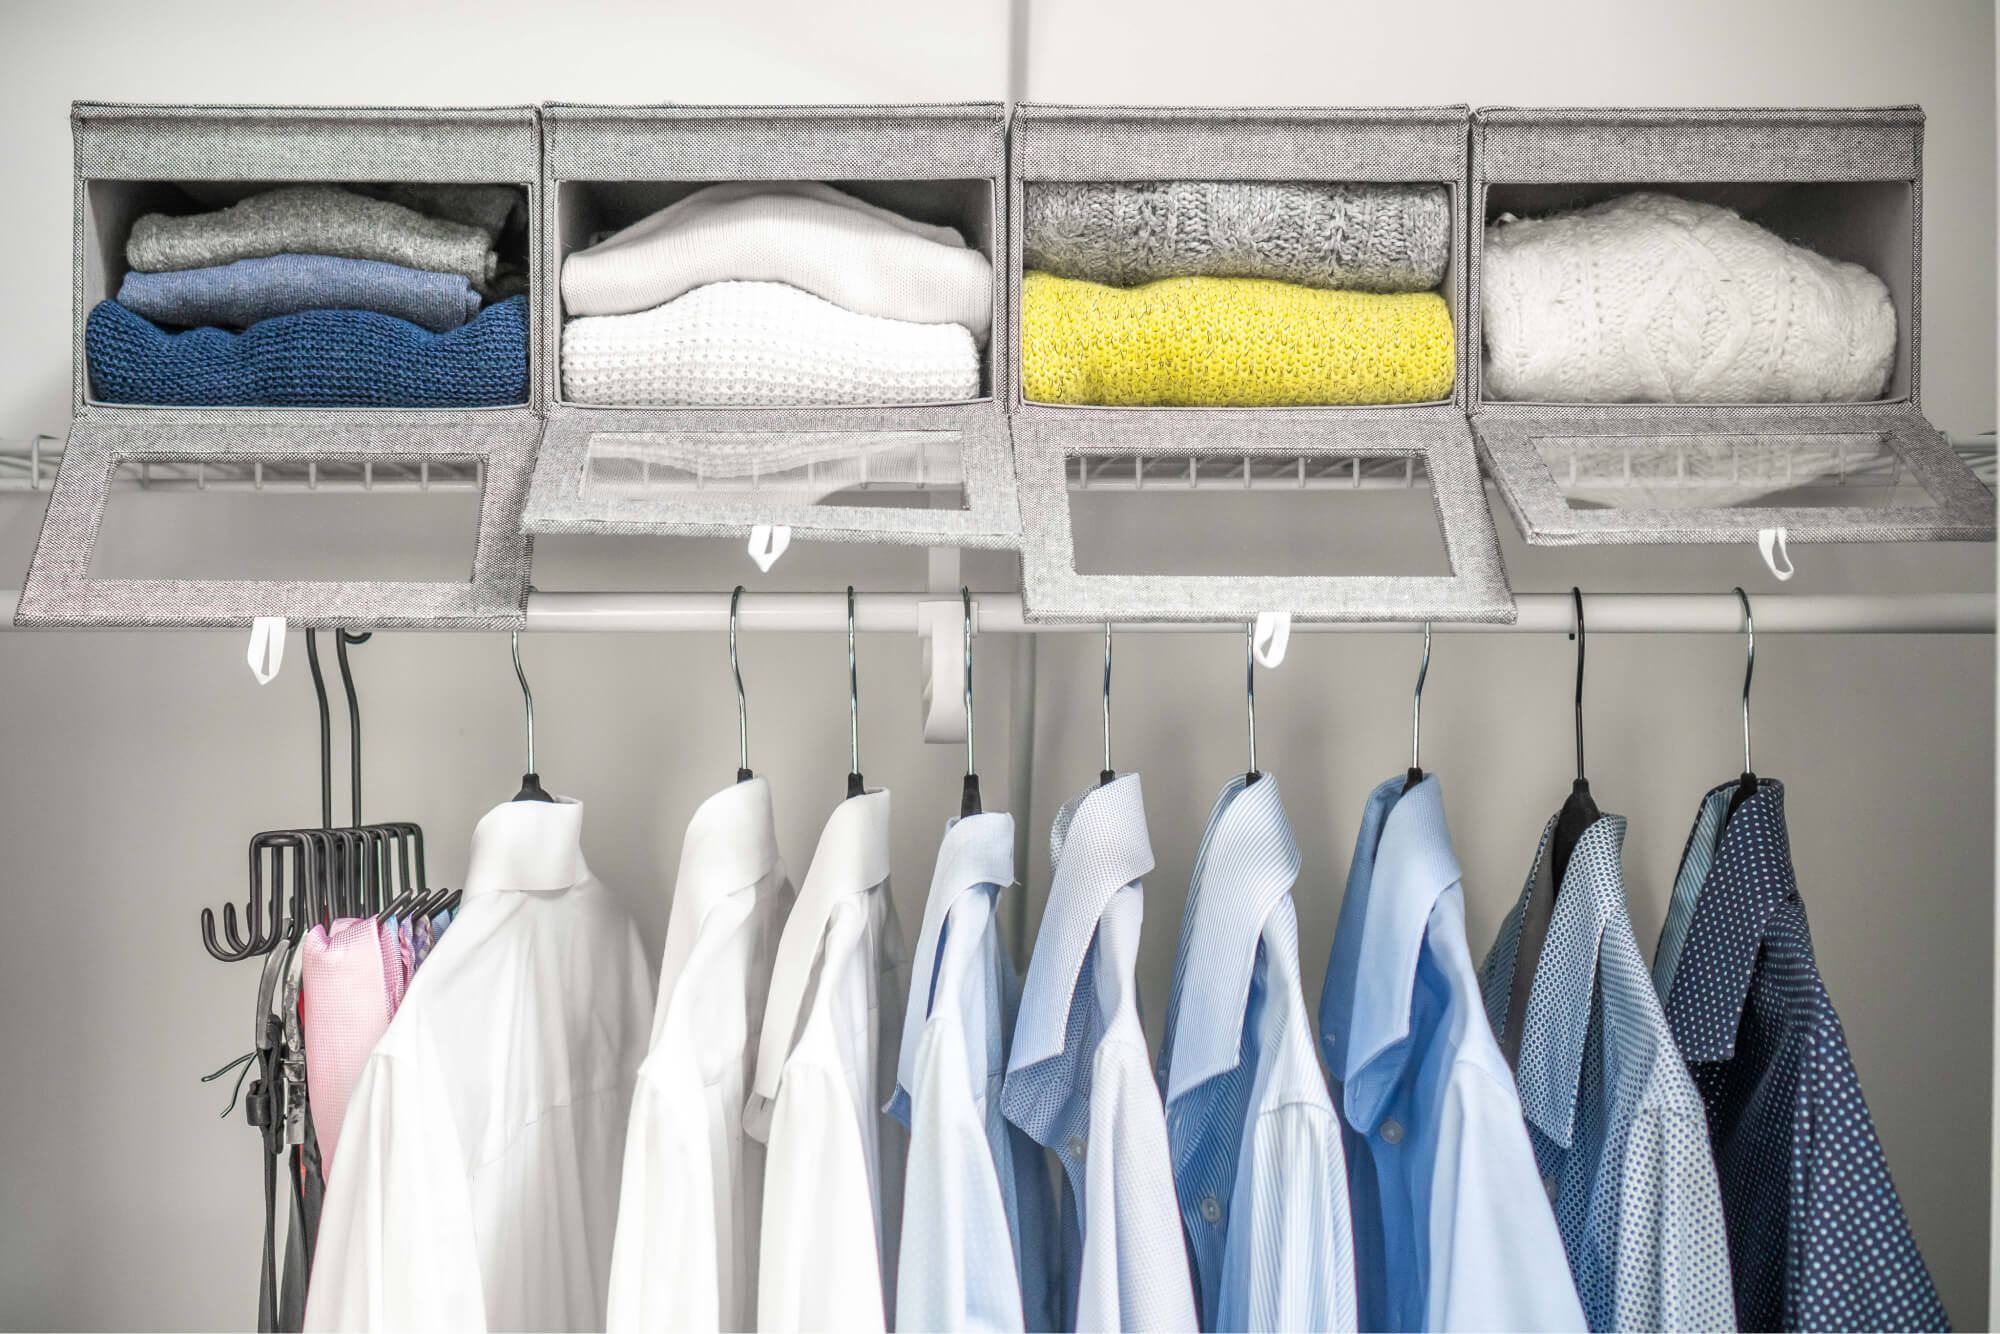 Home Clothes Organizing Boxes with Shirts